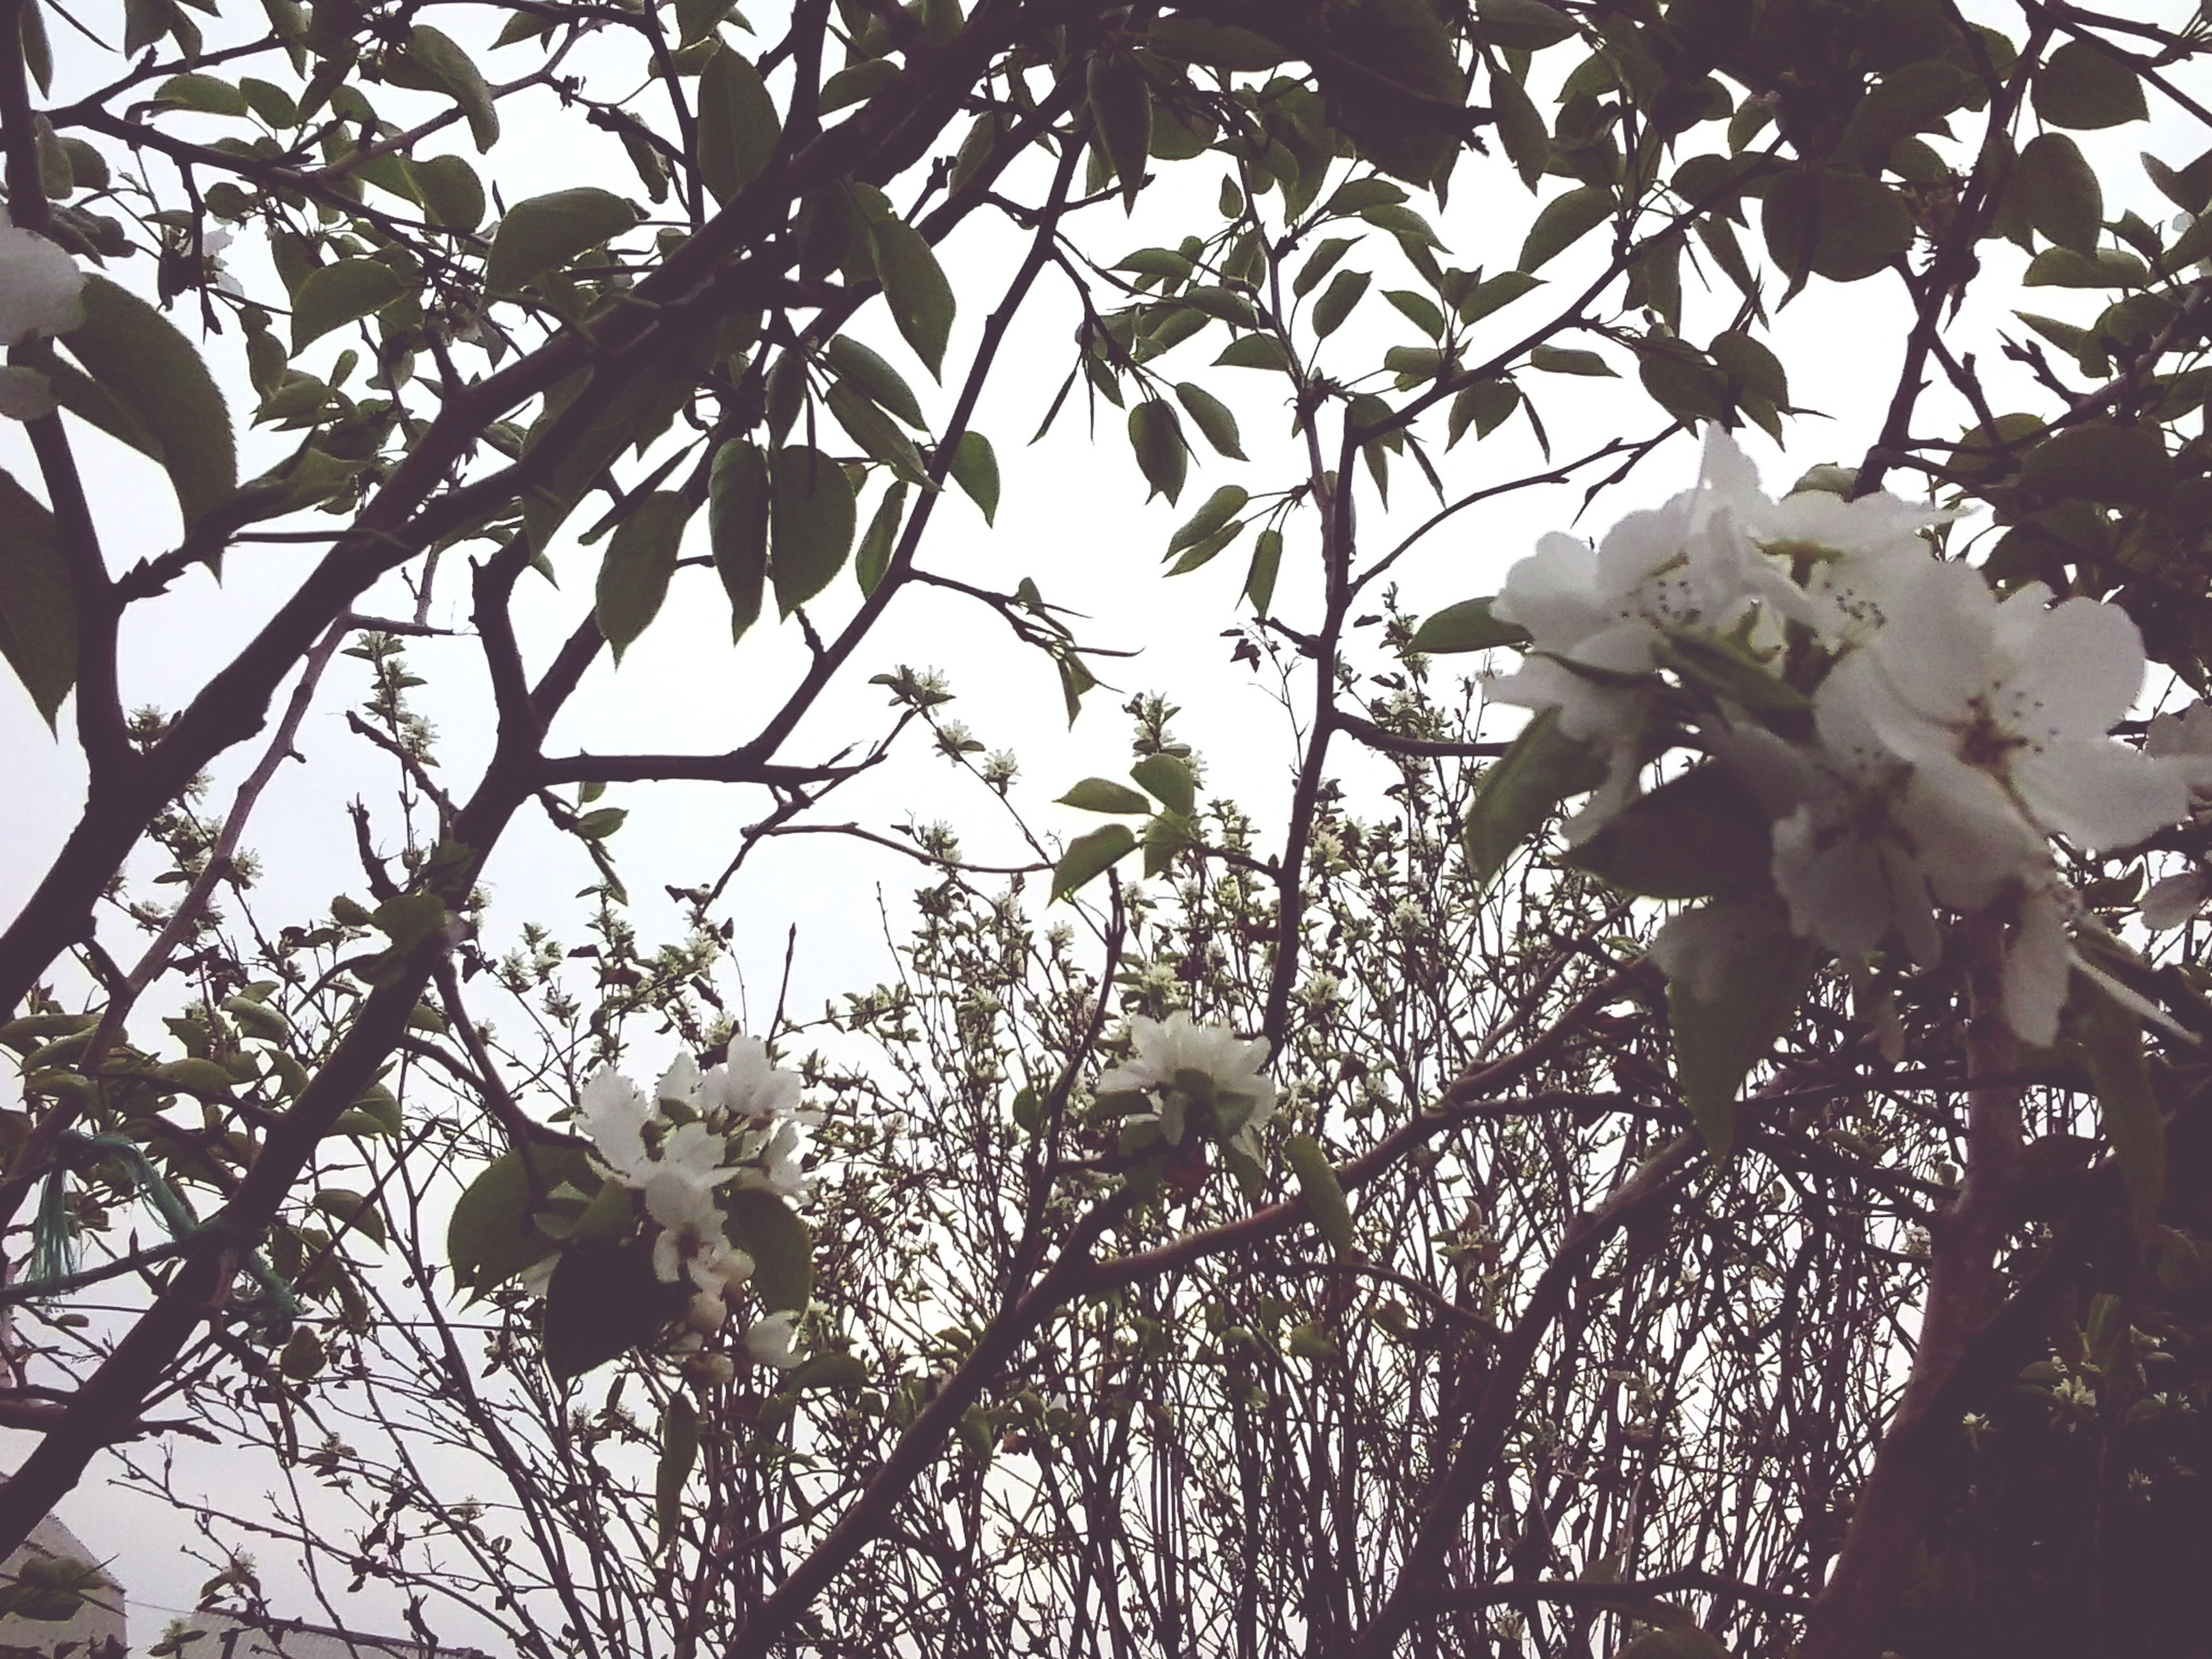 flower, growth, branch, freshness, tree, low angle view, fragility, beauty in nature, nature, petal, blossom, blooming, white color, in bloom, sky, cherry blossom, flower head, close-up, springtime, twig